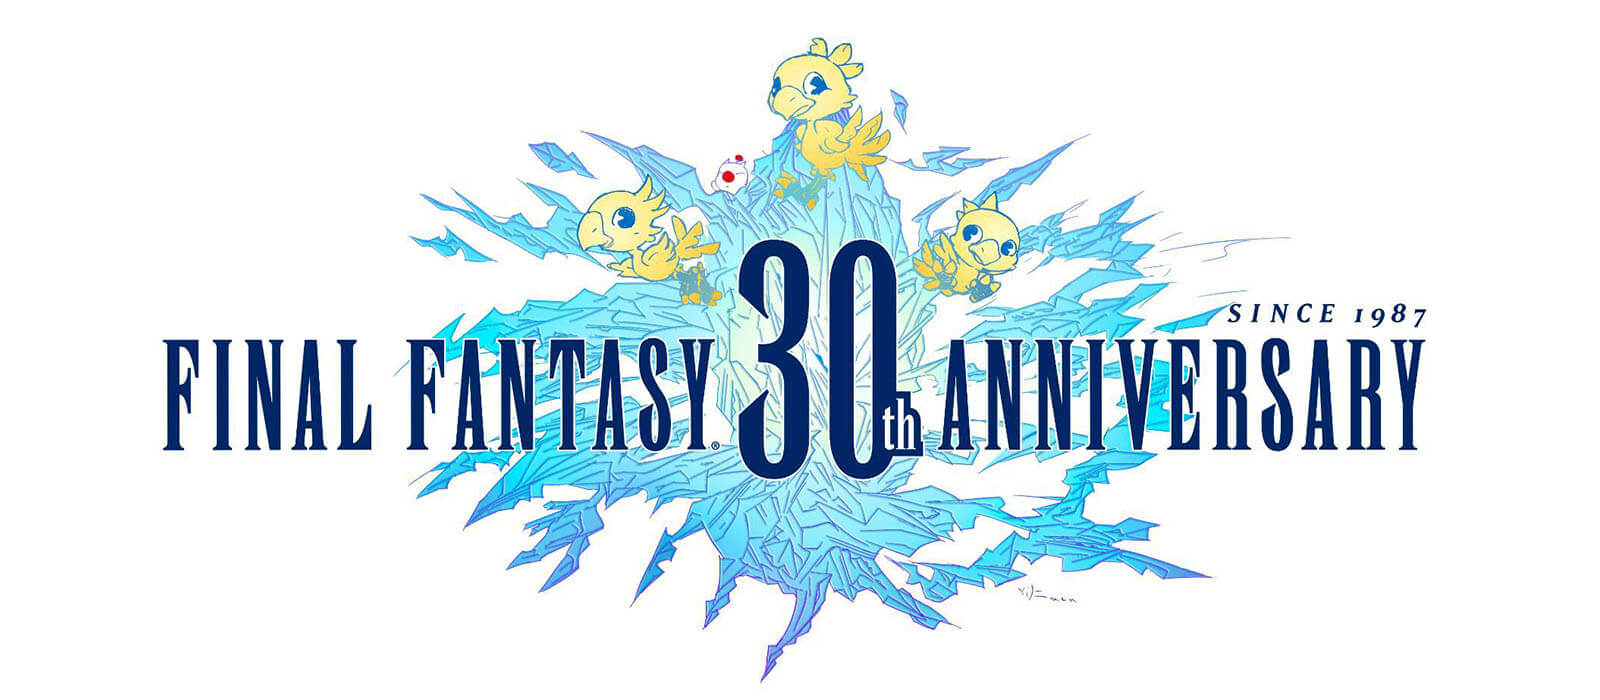 Final Fantasy 30th Anniversary Concert